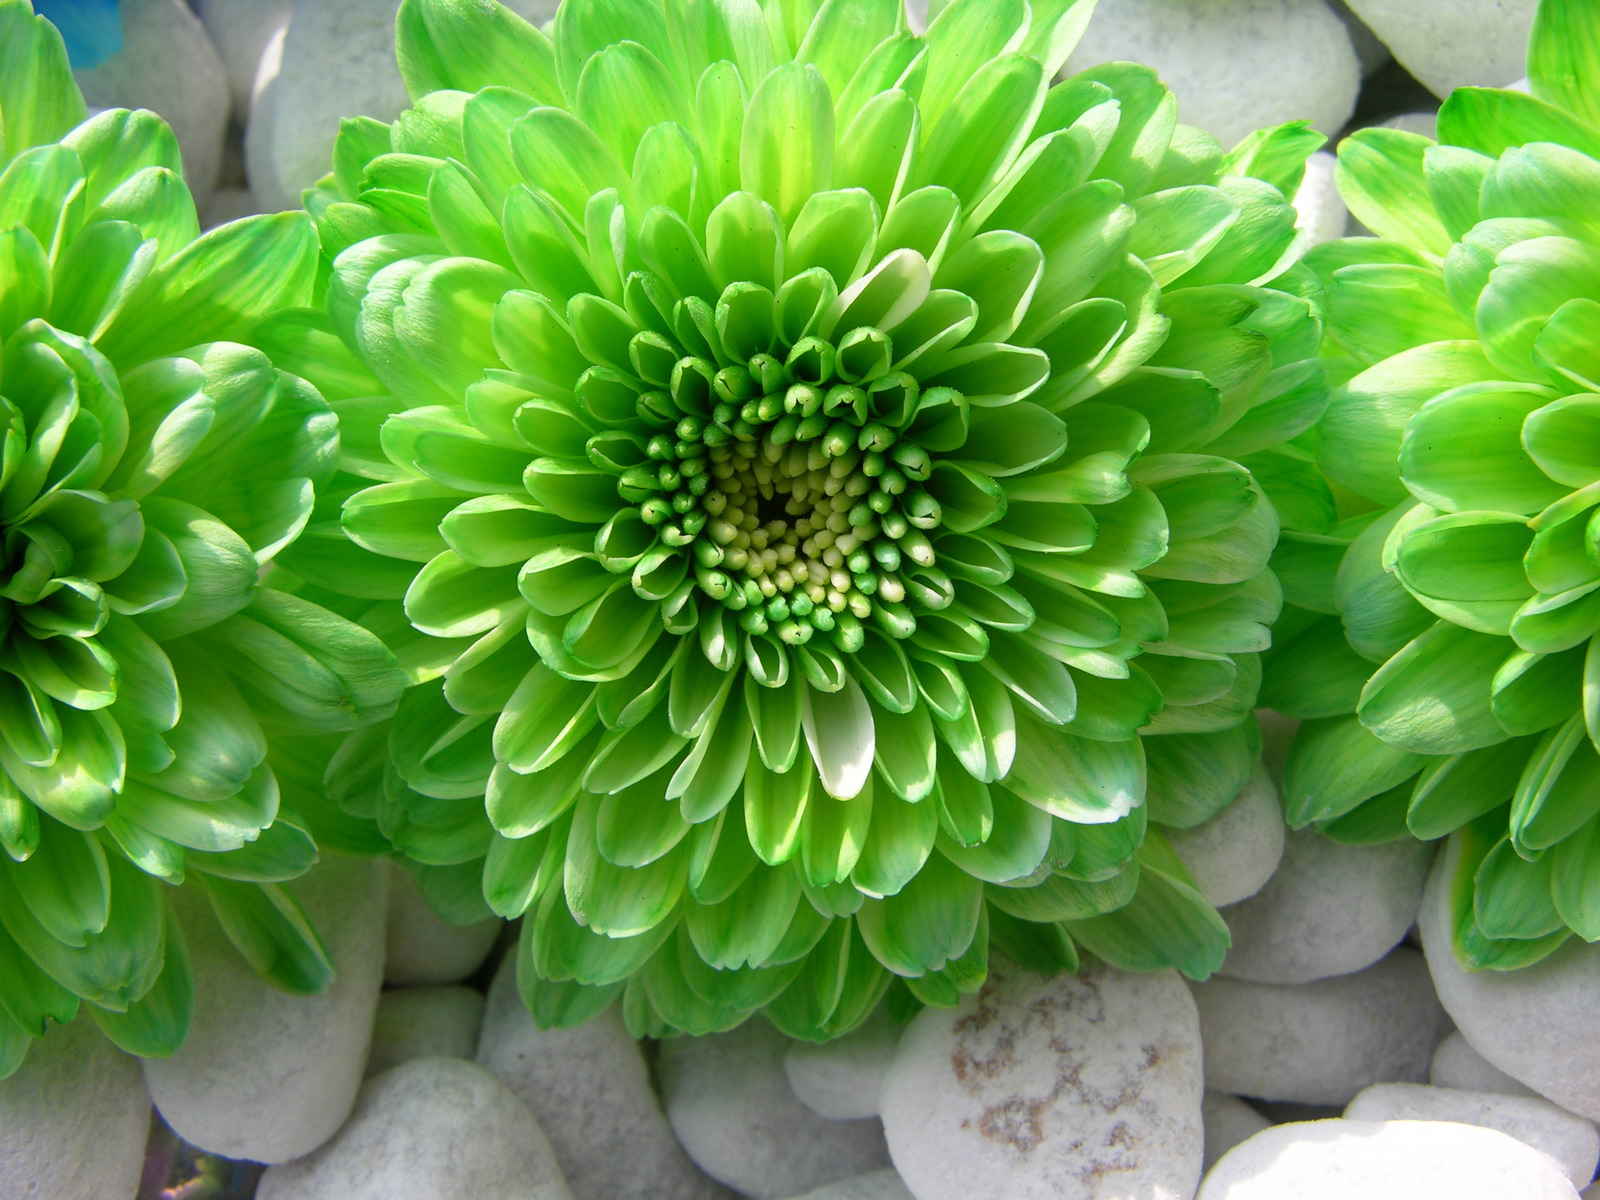 Pictures Of Green Flowers 6 Widescreen Wallpaper